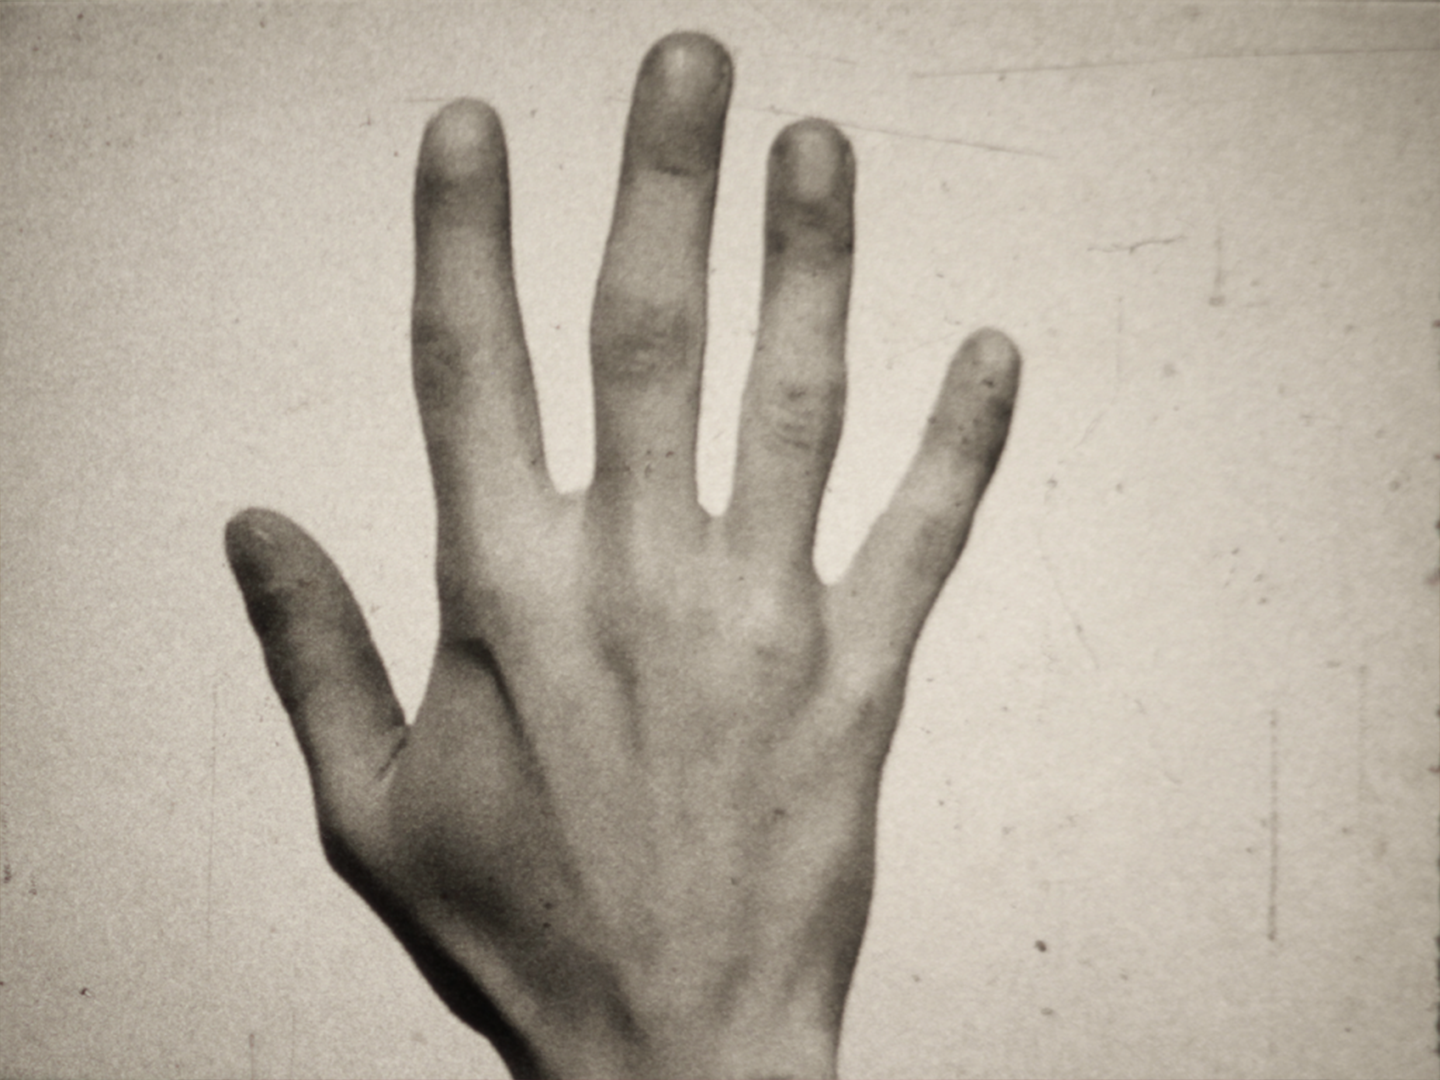 """Fifth Metacarpal    """"I broke my hand last summer."""" A memoir of tenderness hazarded, muted ache, and a fiberglass cast.  Scott Fitzpatrick  Canada, 2018, 6:00 mins  Visit the   artist's Vimeo page here  ."""